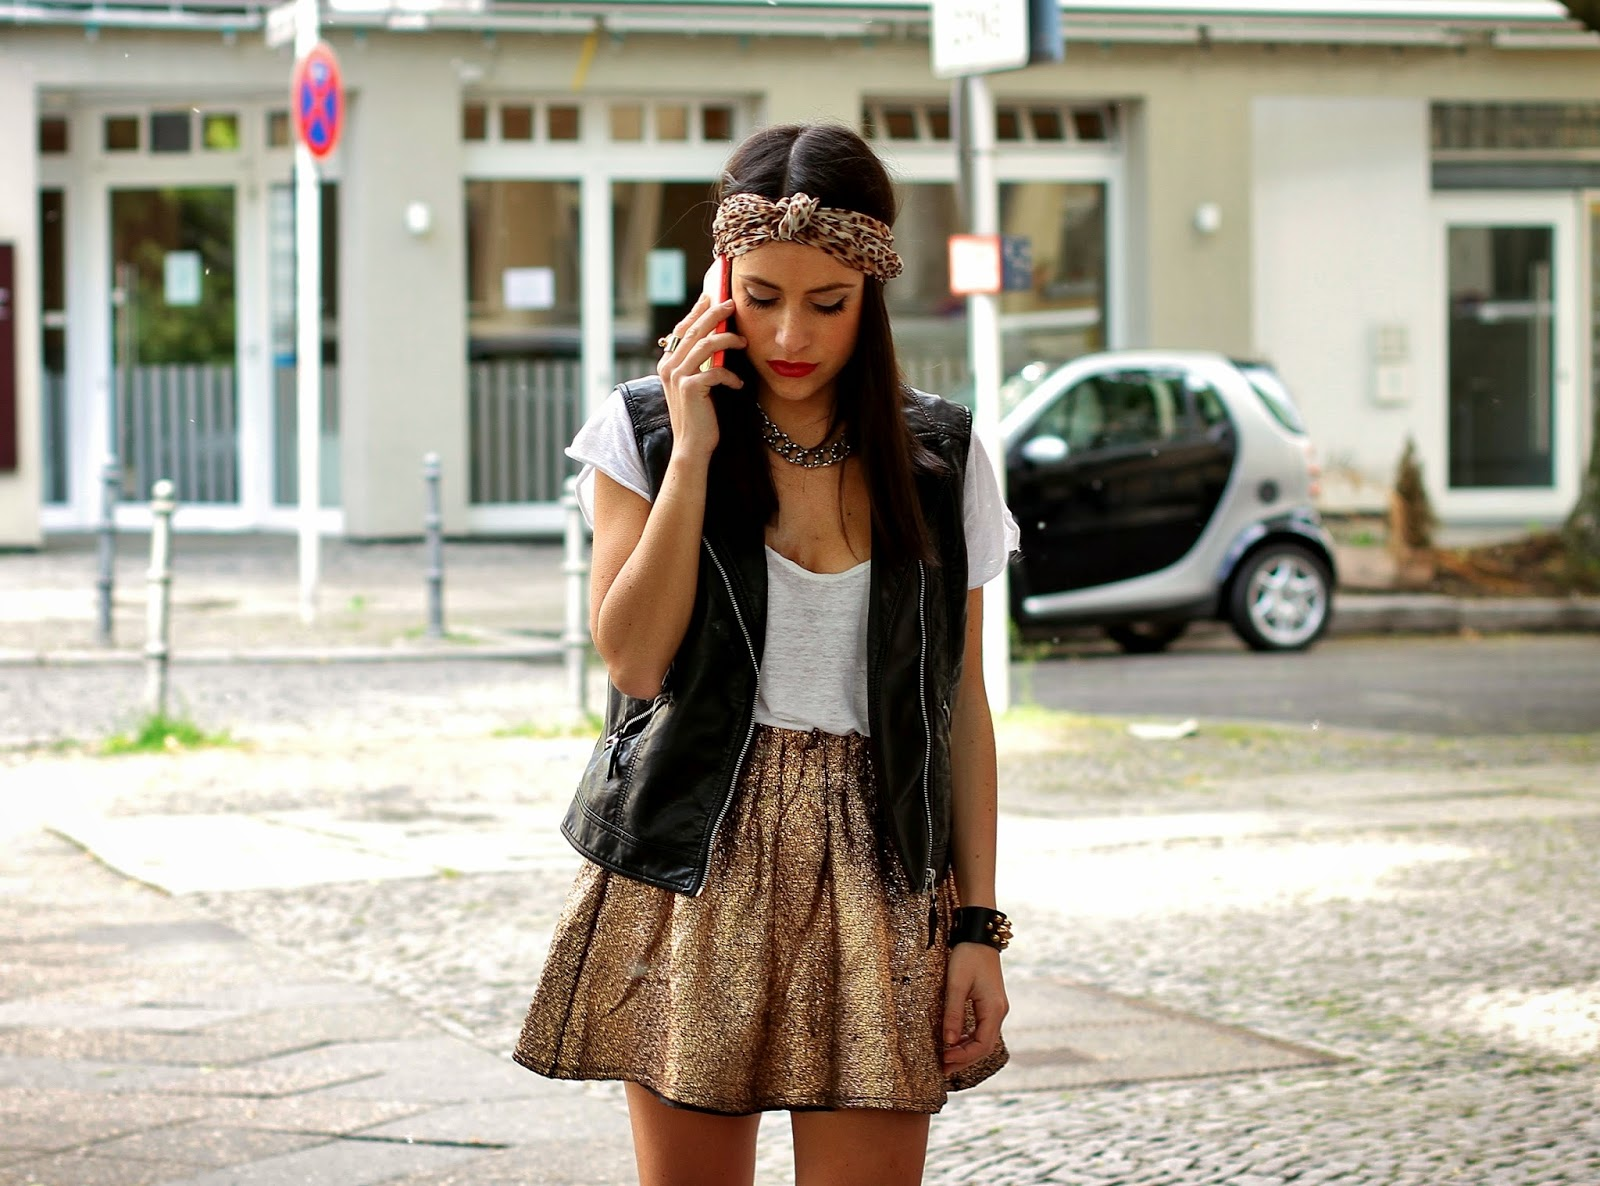 streetstyle-chicetoile-francescacastellano-outfitoftheday-berlin-summer-2014-